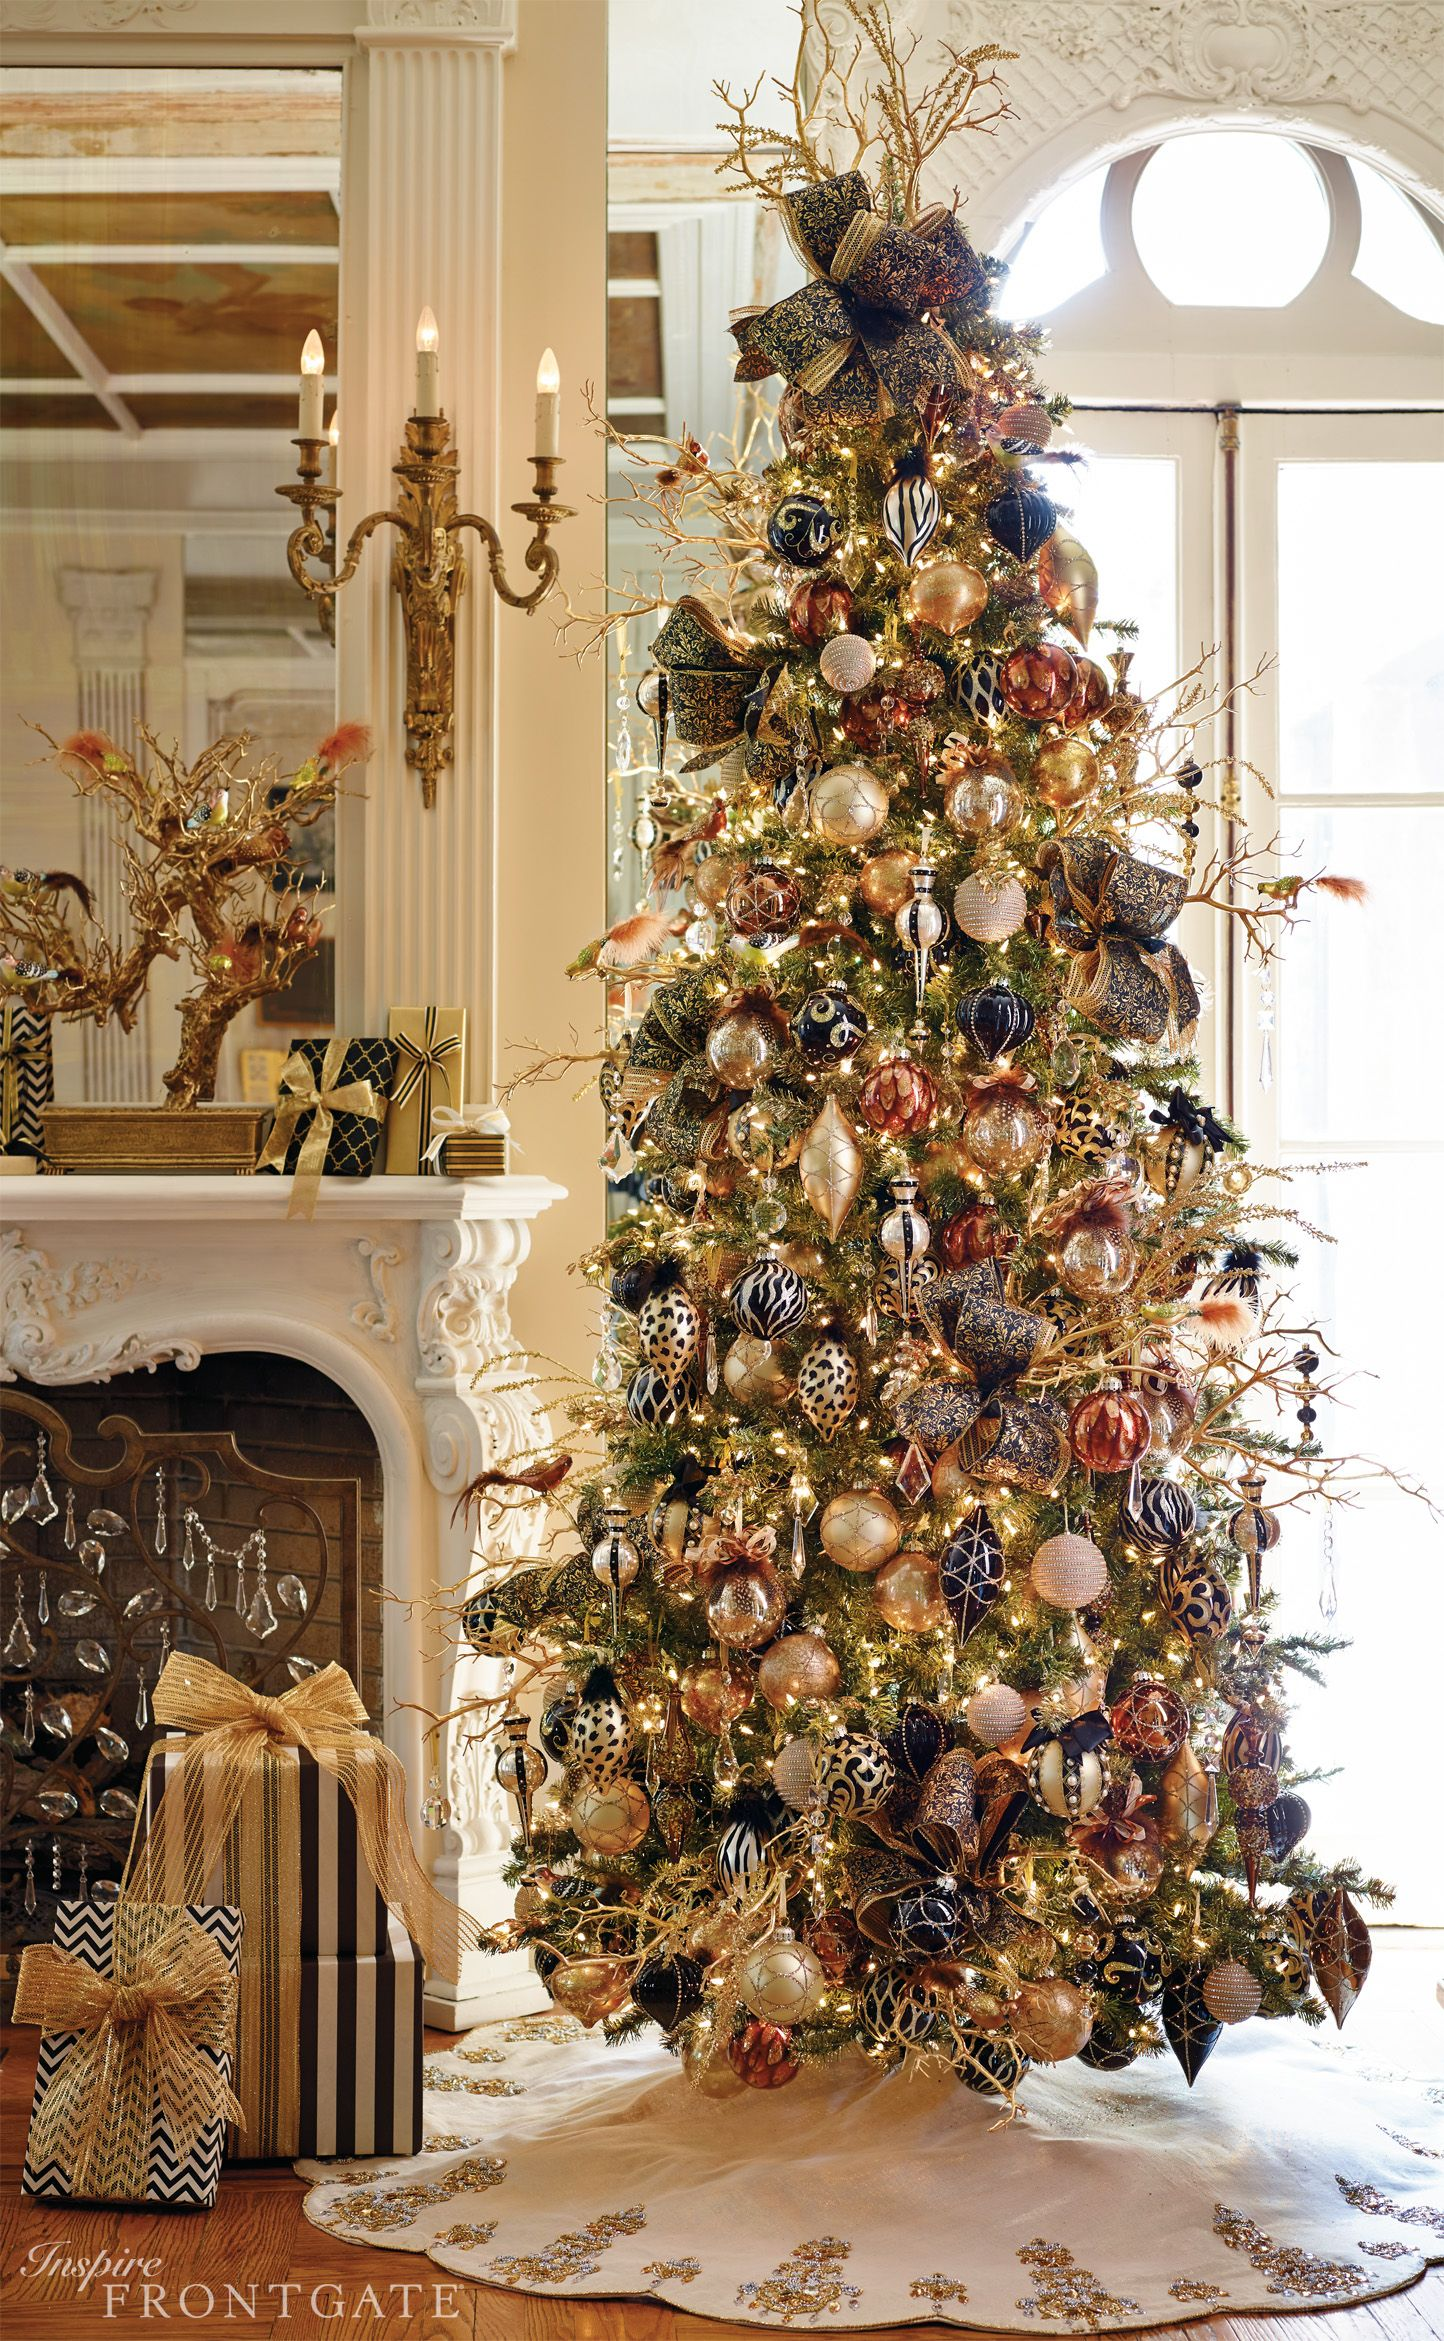 I L O V E 3 This Tree This Year I Will Decorate With Wild Abandon Beautiful Christmas Trees Holiday Christmas Tree Holiday Decor